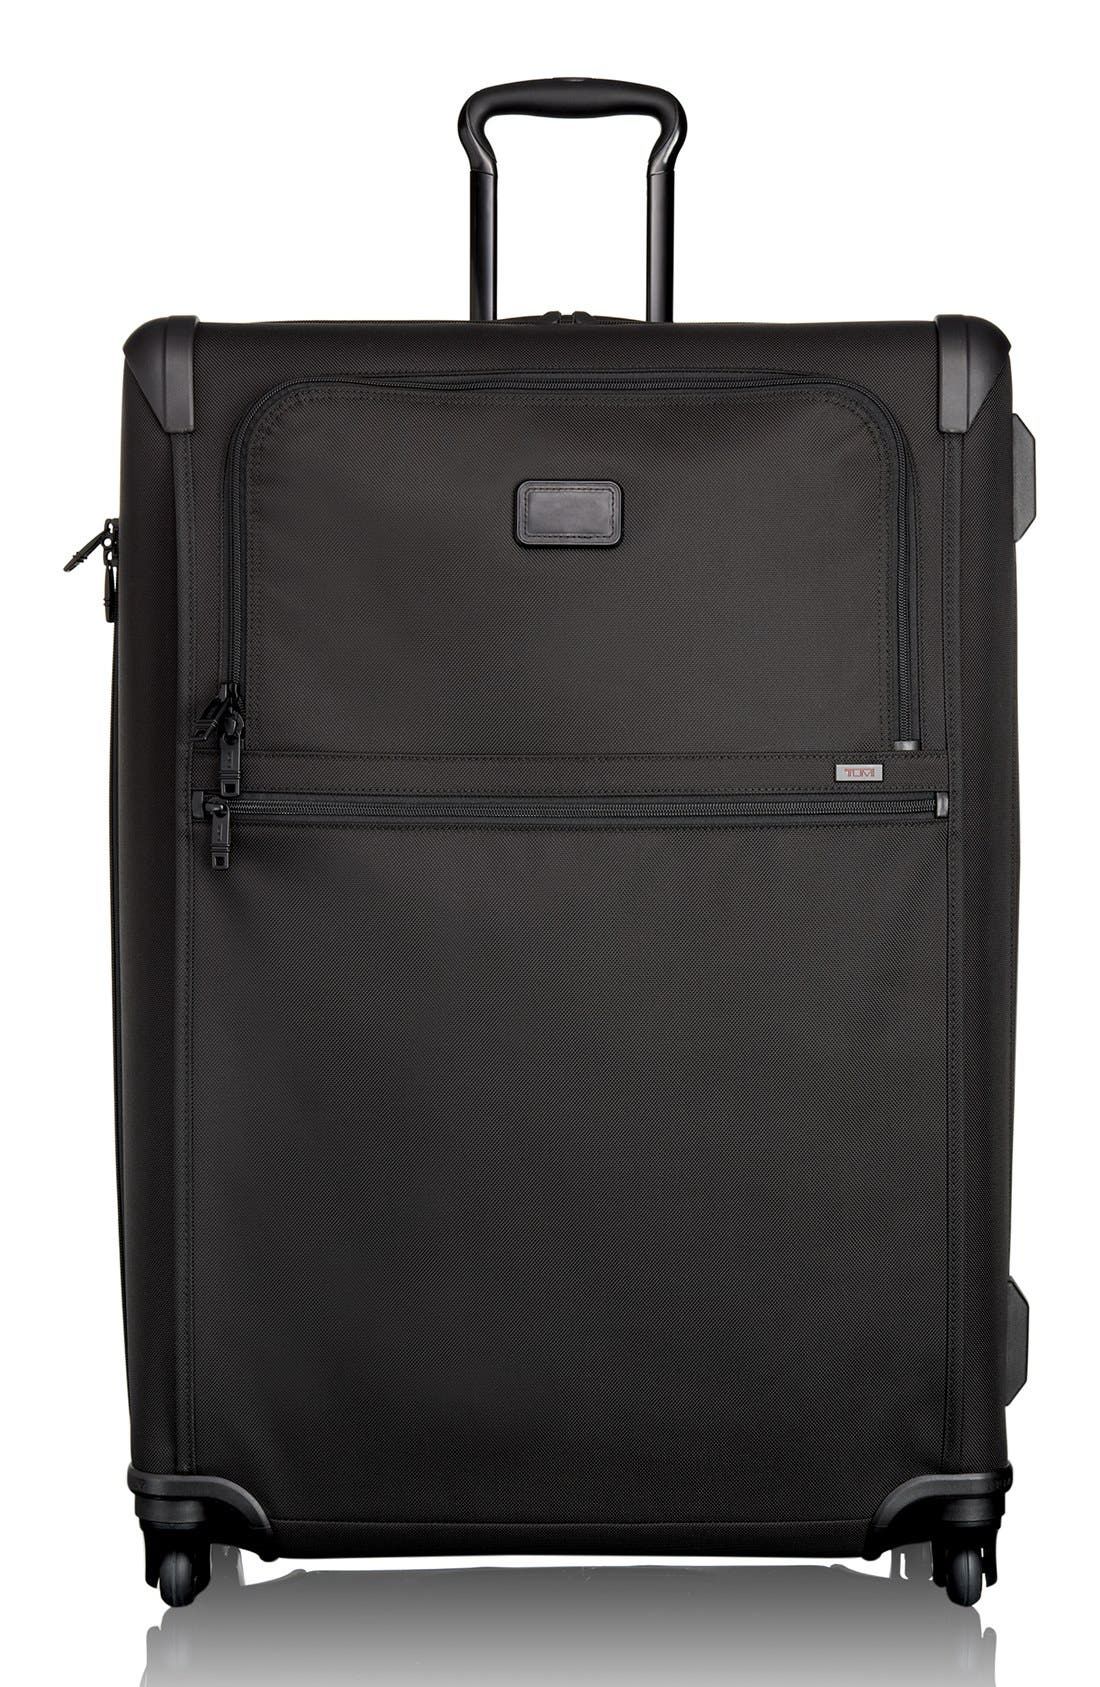 TUMI Alpha 2 Extended Trip Packing Case